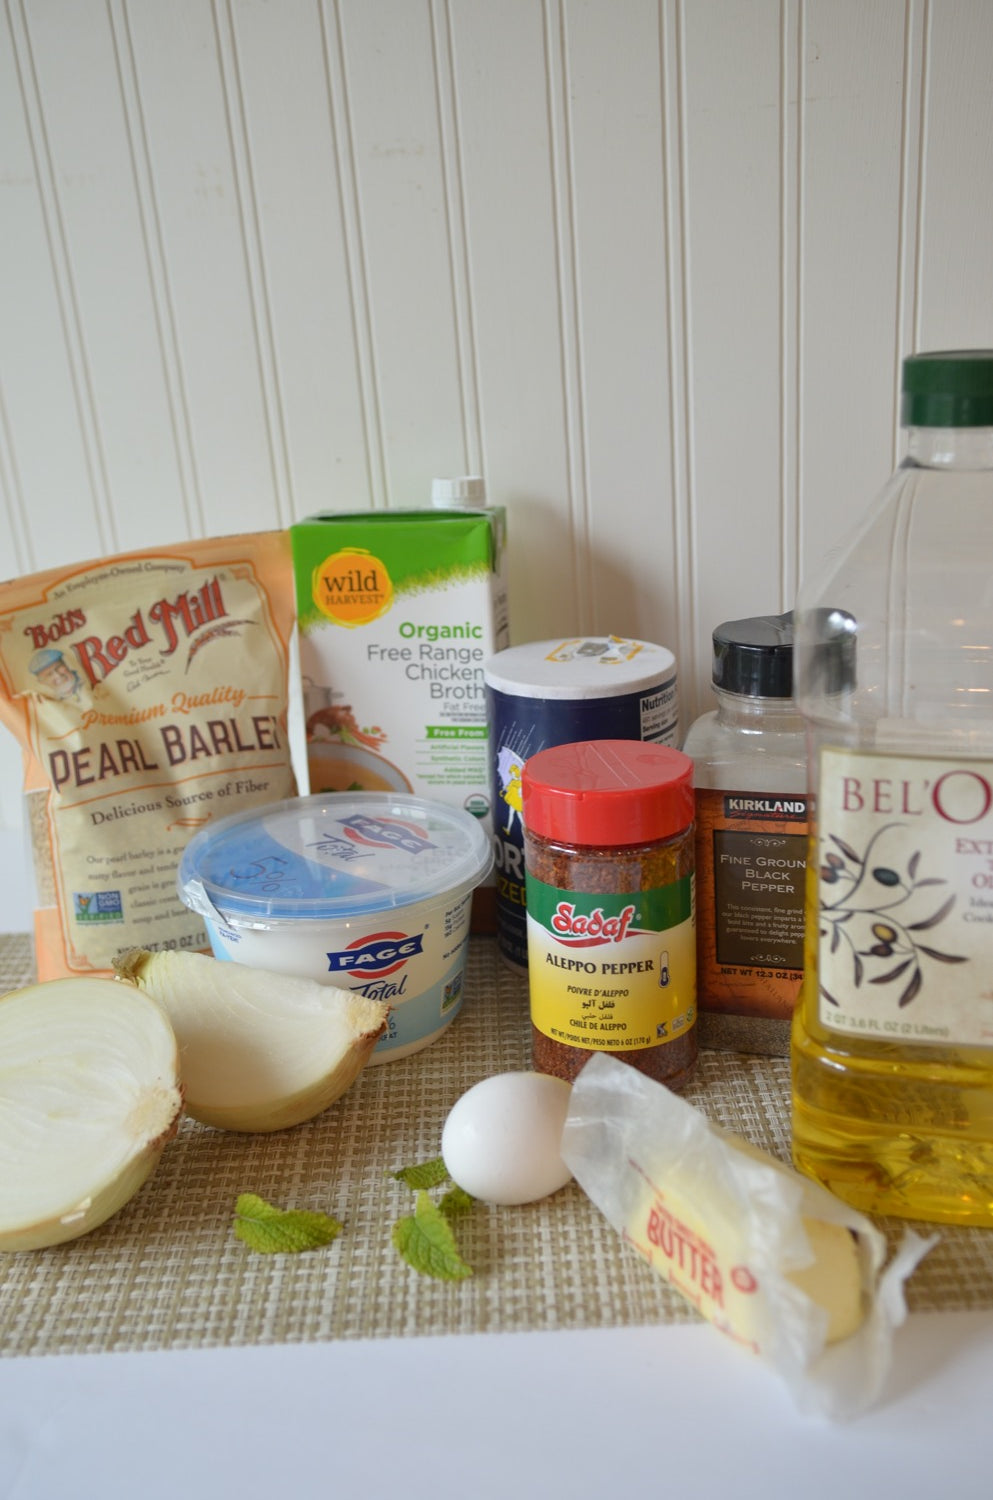 Ingredients for Spas Soup